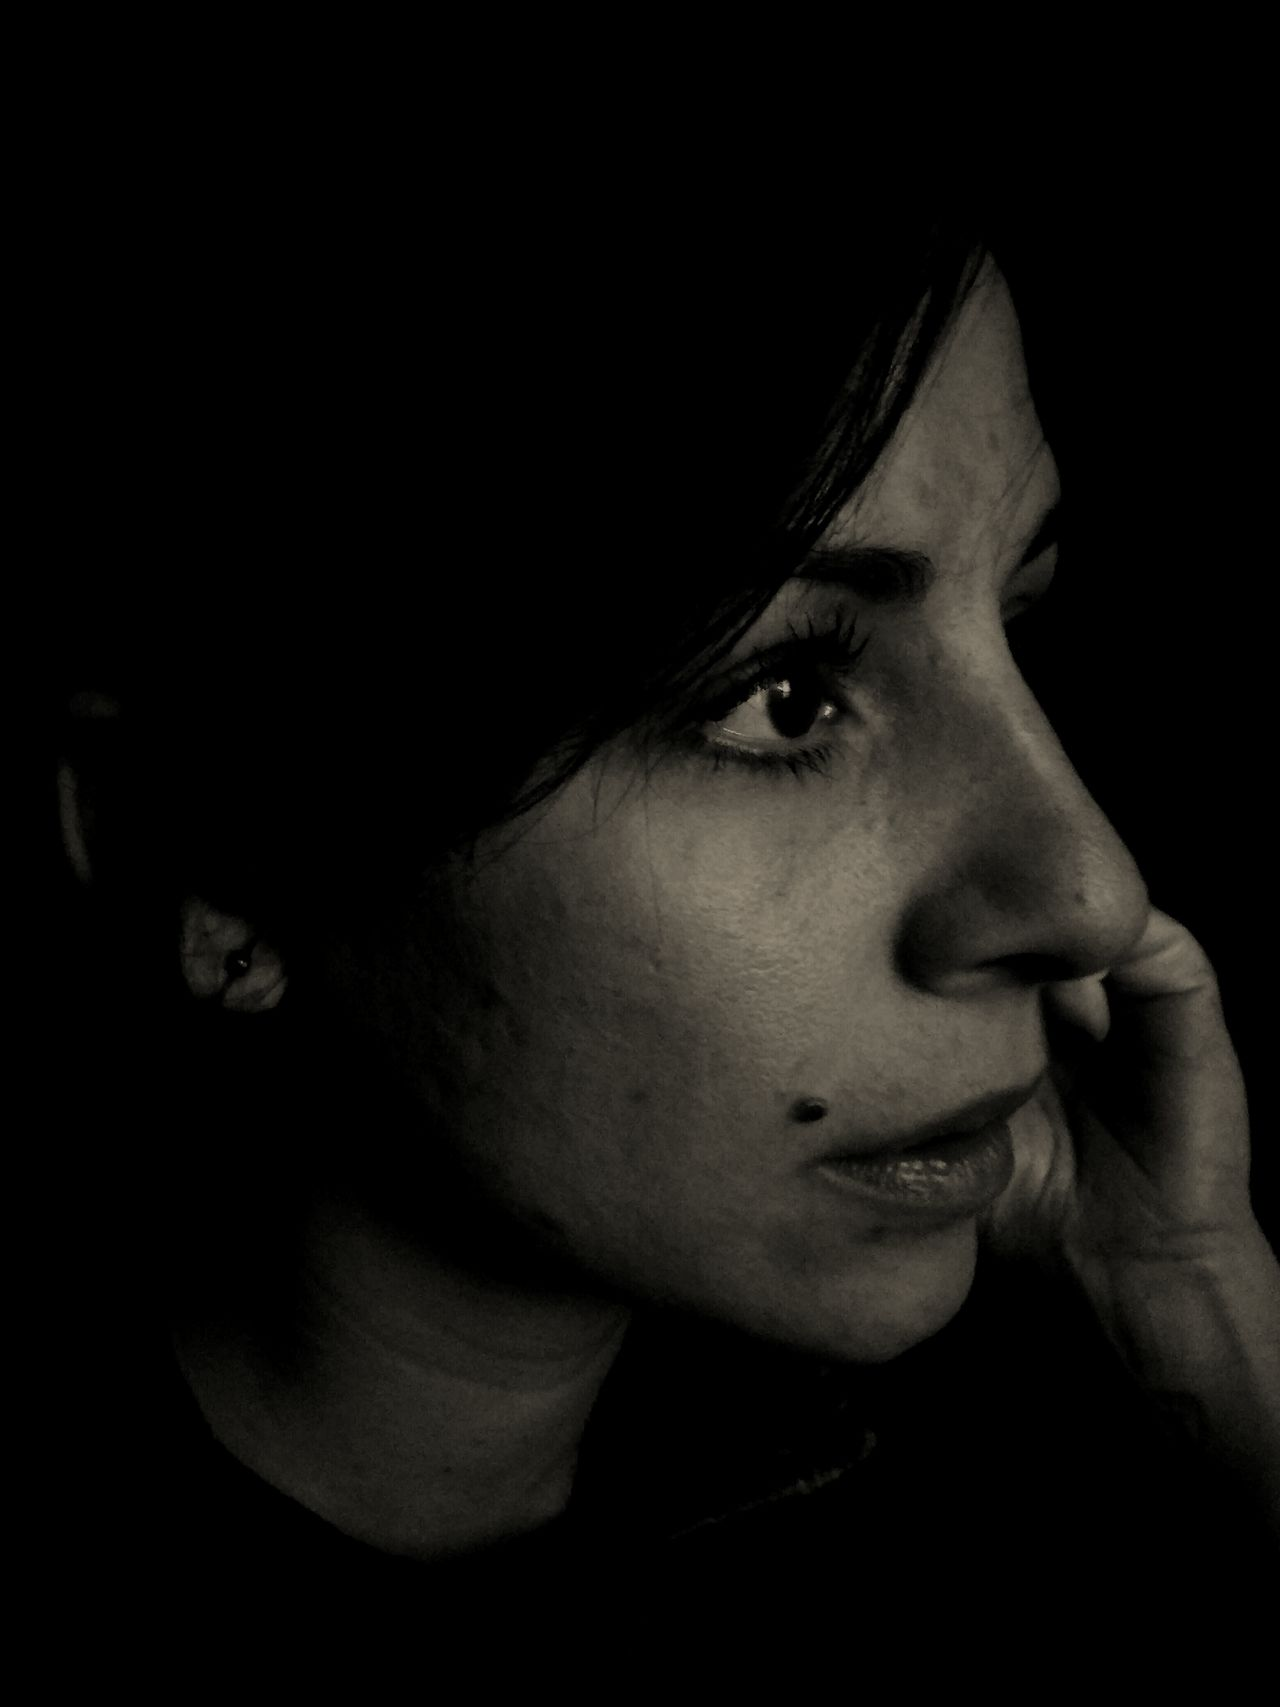 Portrait Portrait Photography Portrait Of A Woman Mobilephotography LGg3photography Darktones Moment